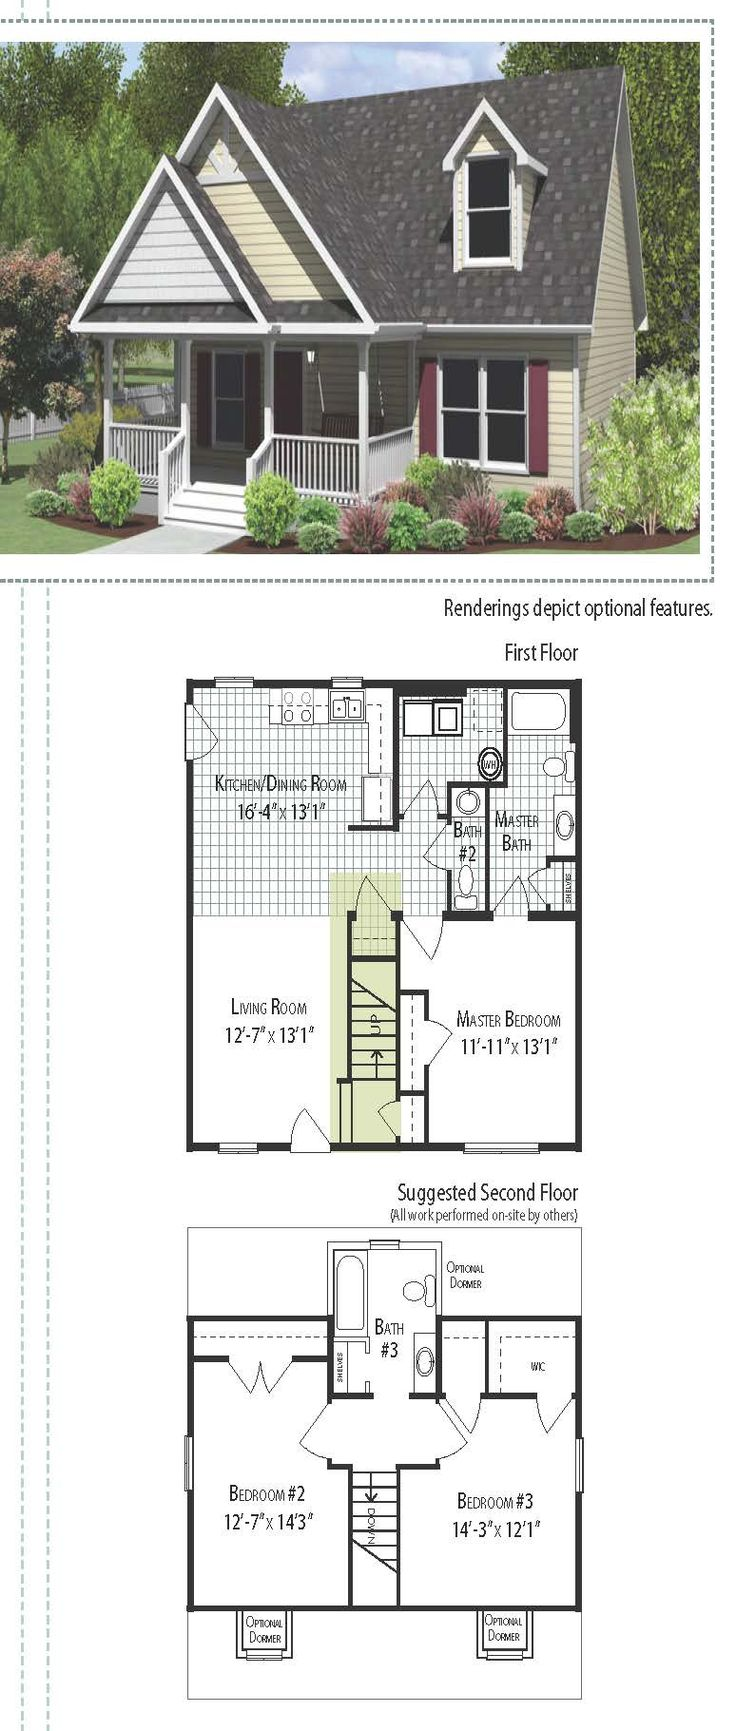 31 best floor plans images on pinterest square feet floor plans country style cape cod home 1406 square feet with a simple front porch this floor plan connects the kitchen and dinning room resulting in one large open